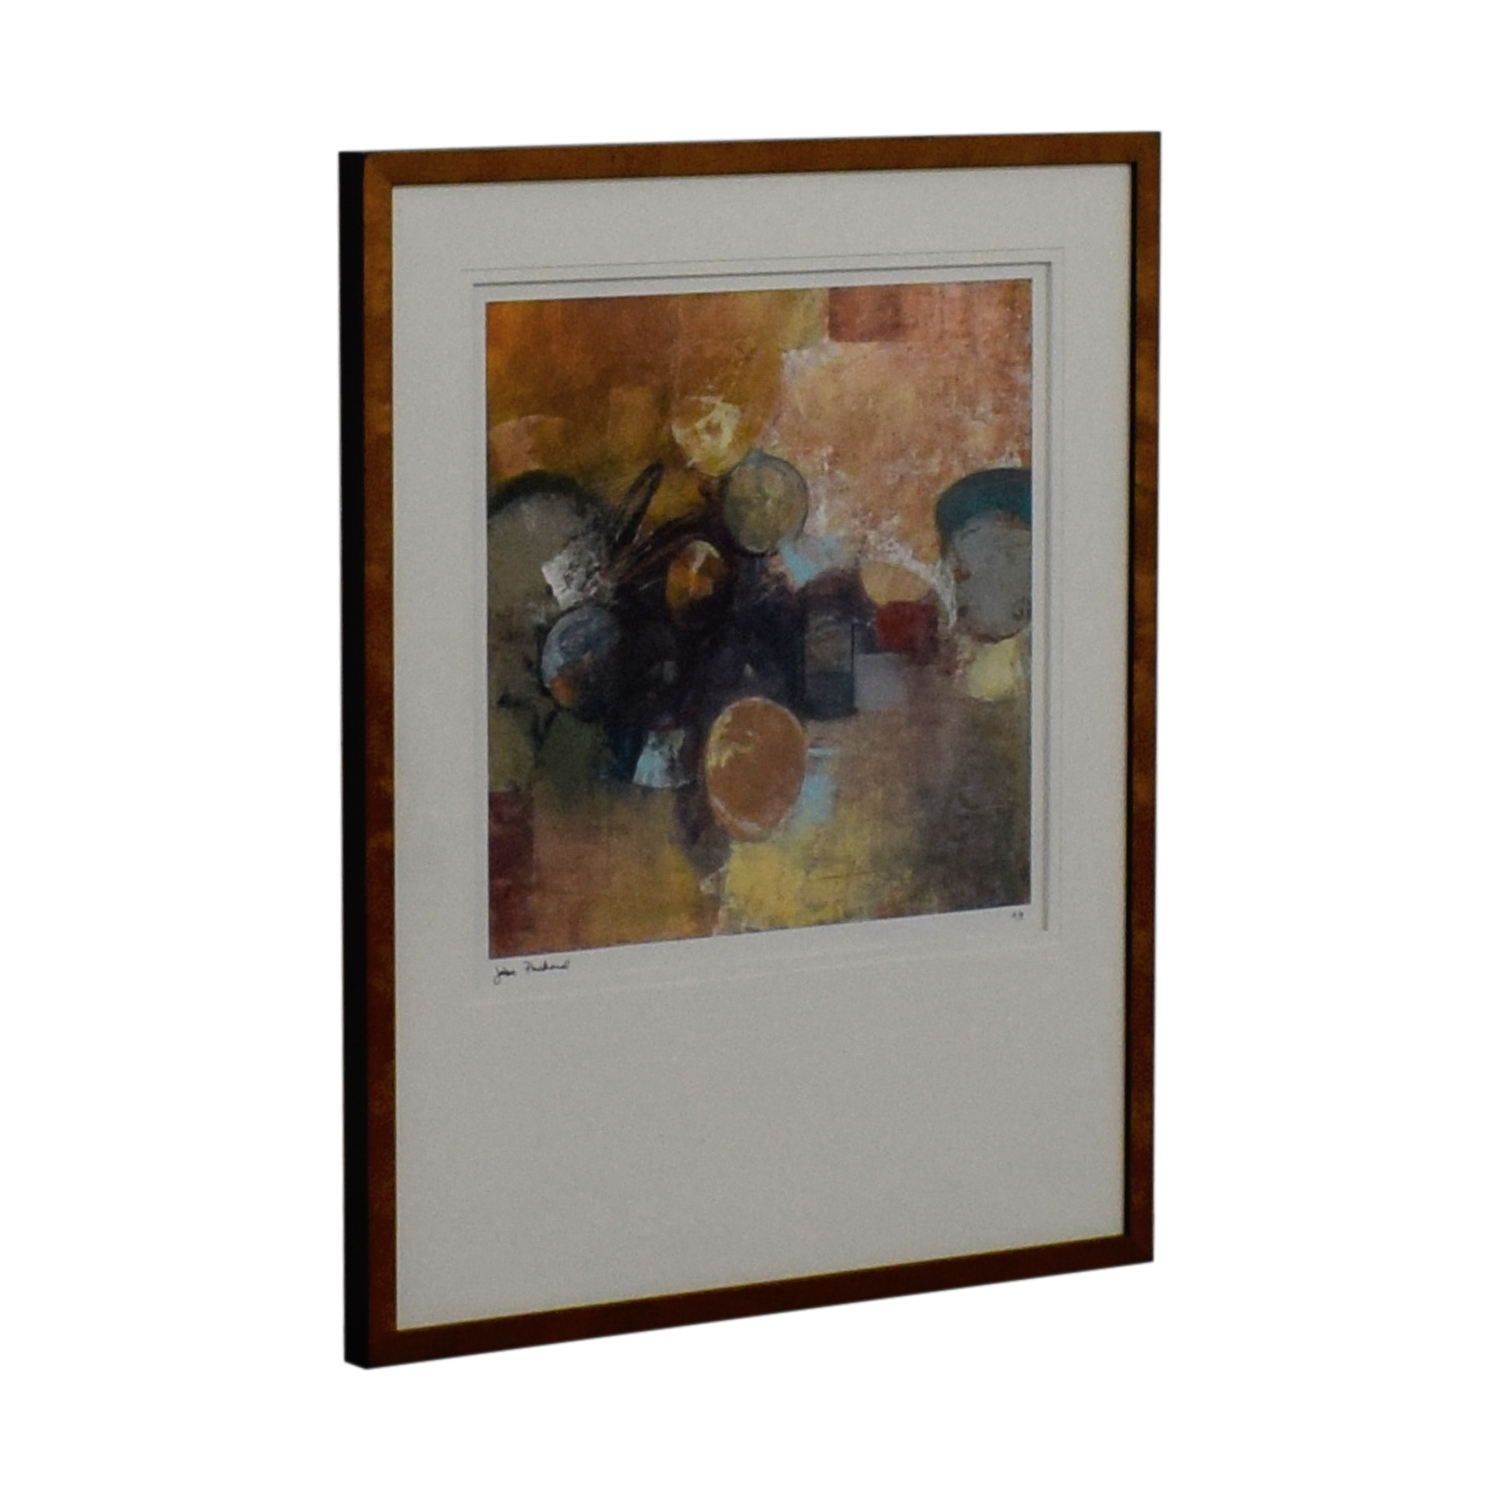 Ethan Allen Ethan Allen Limited Edition Framed Print used